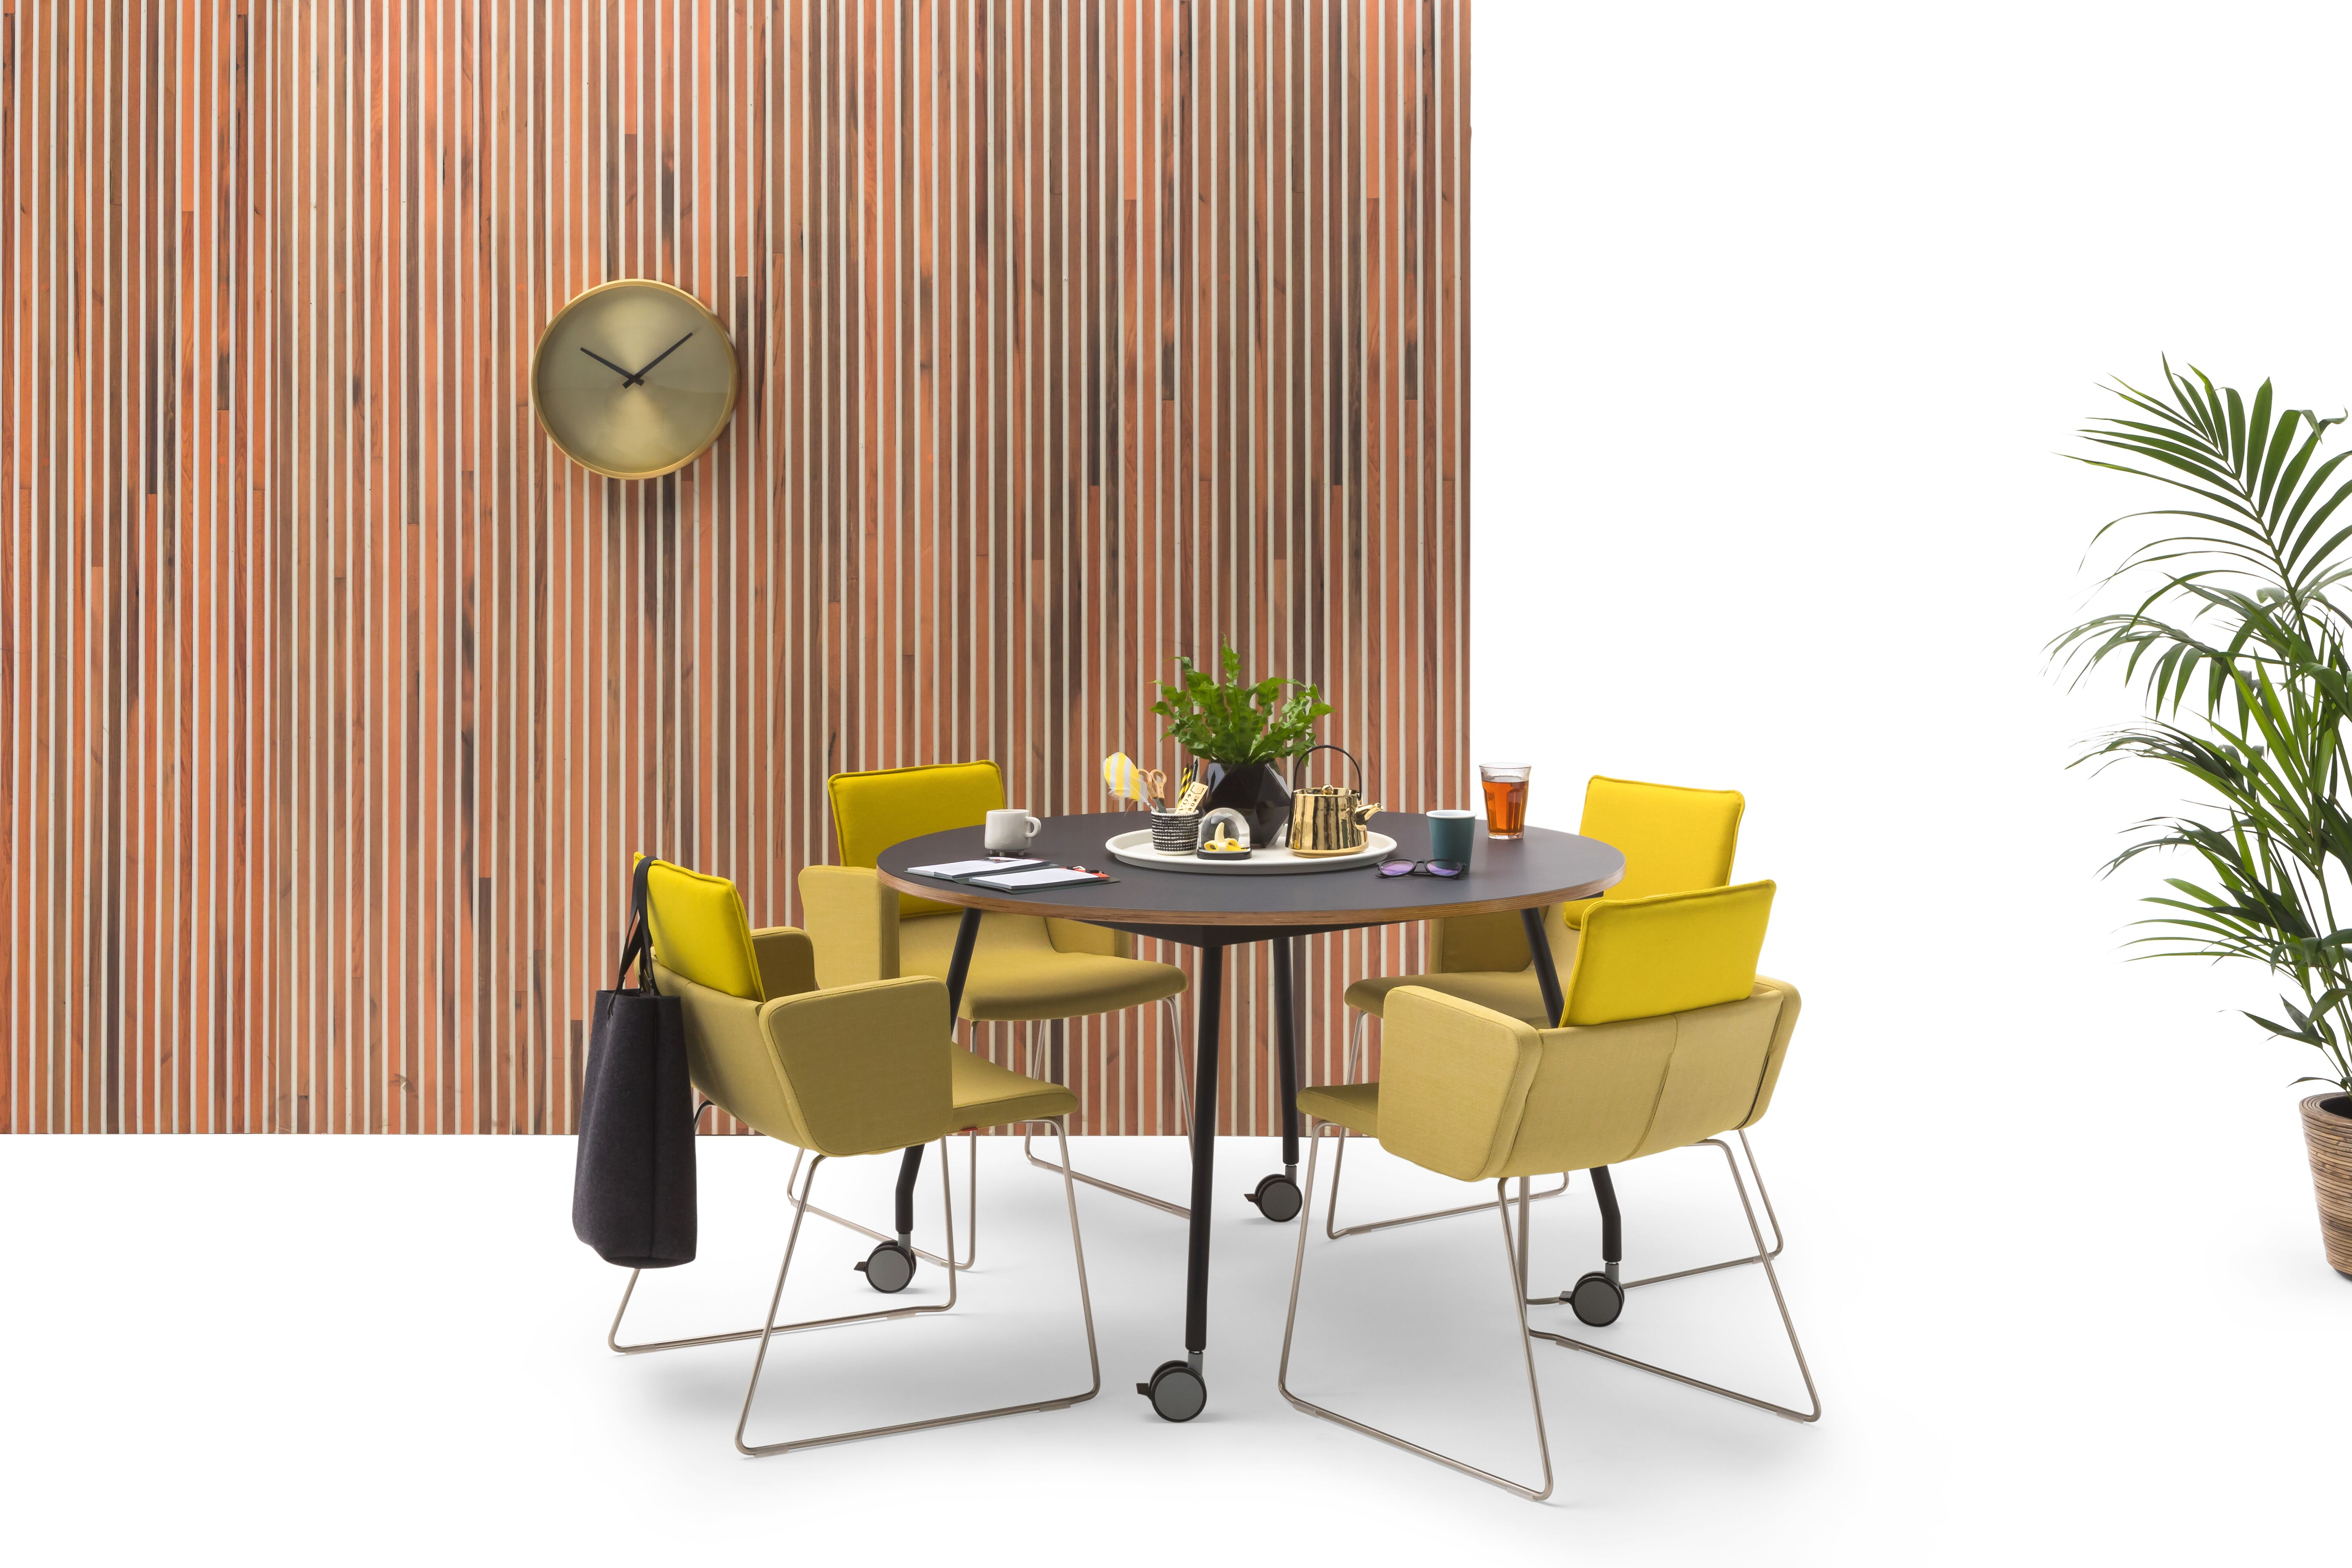 Gispen TEAM Project wheels conference table with black legs and frame and tabletop with yellow Triennial Project chairs and scrapwood backpanel front view